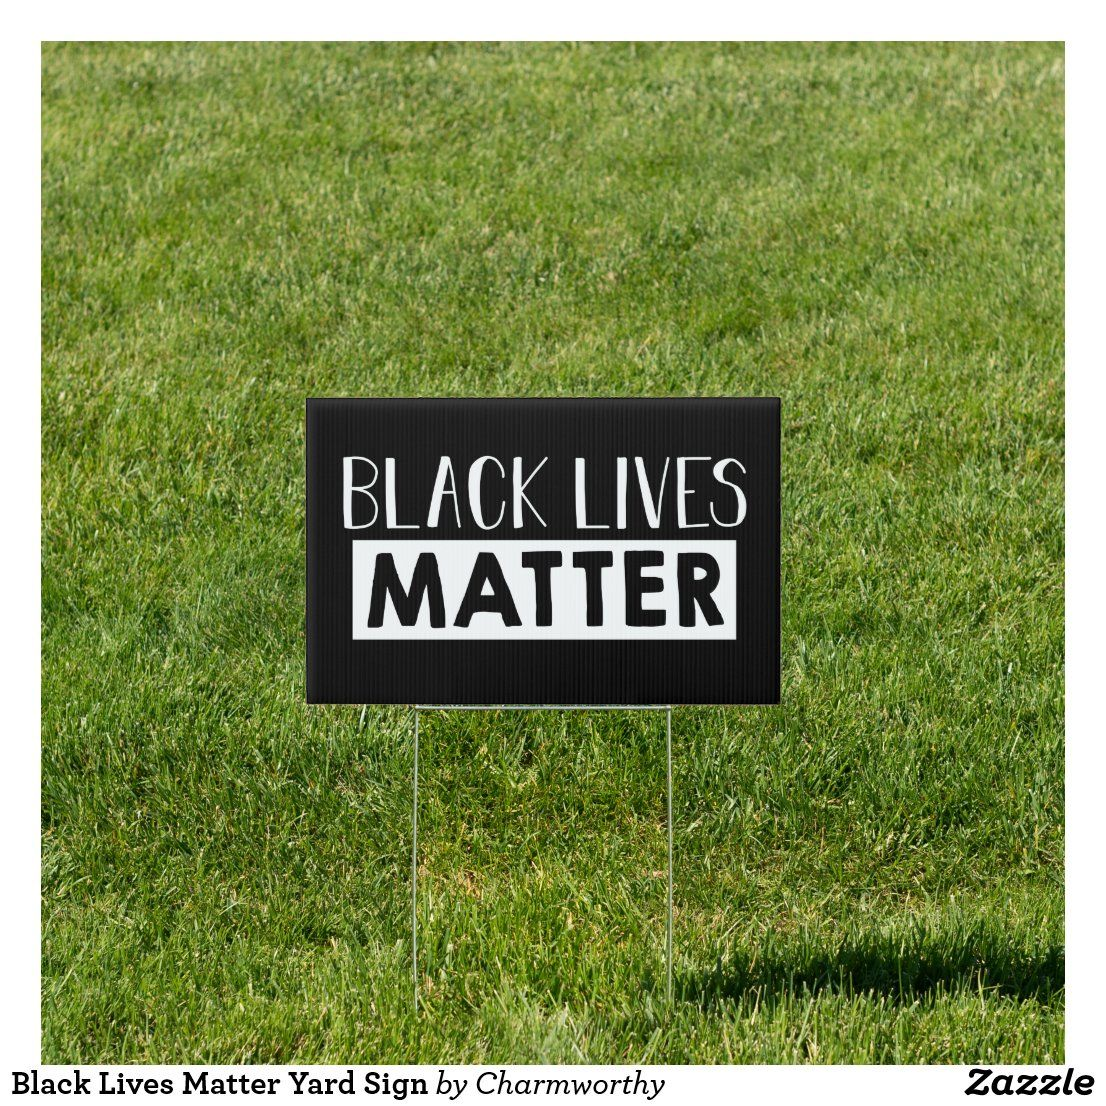 Black Lives Matter Yard Sign Zazzle Com Black Lives Matter Black Lives Matter Poster Black Lives